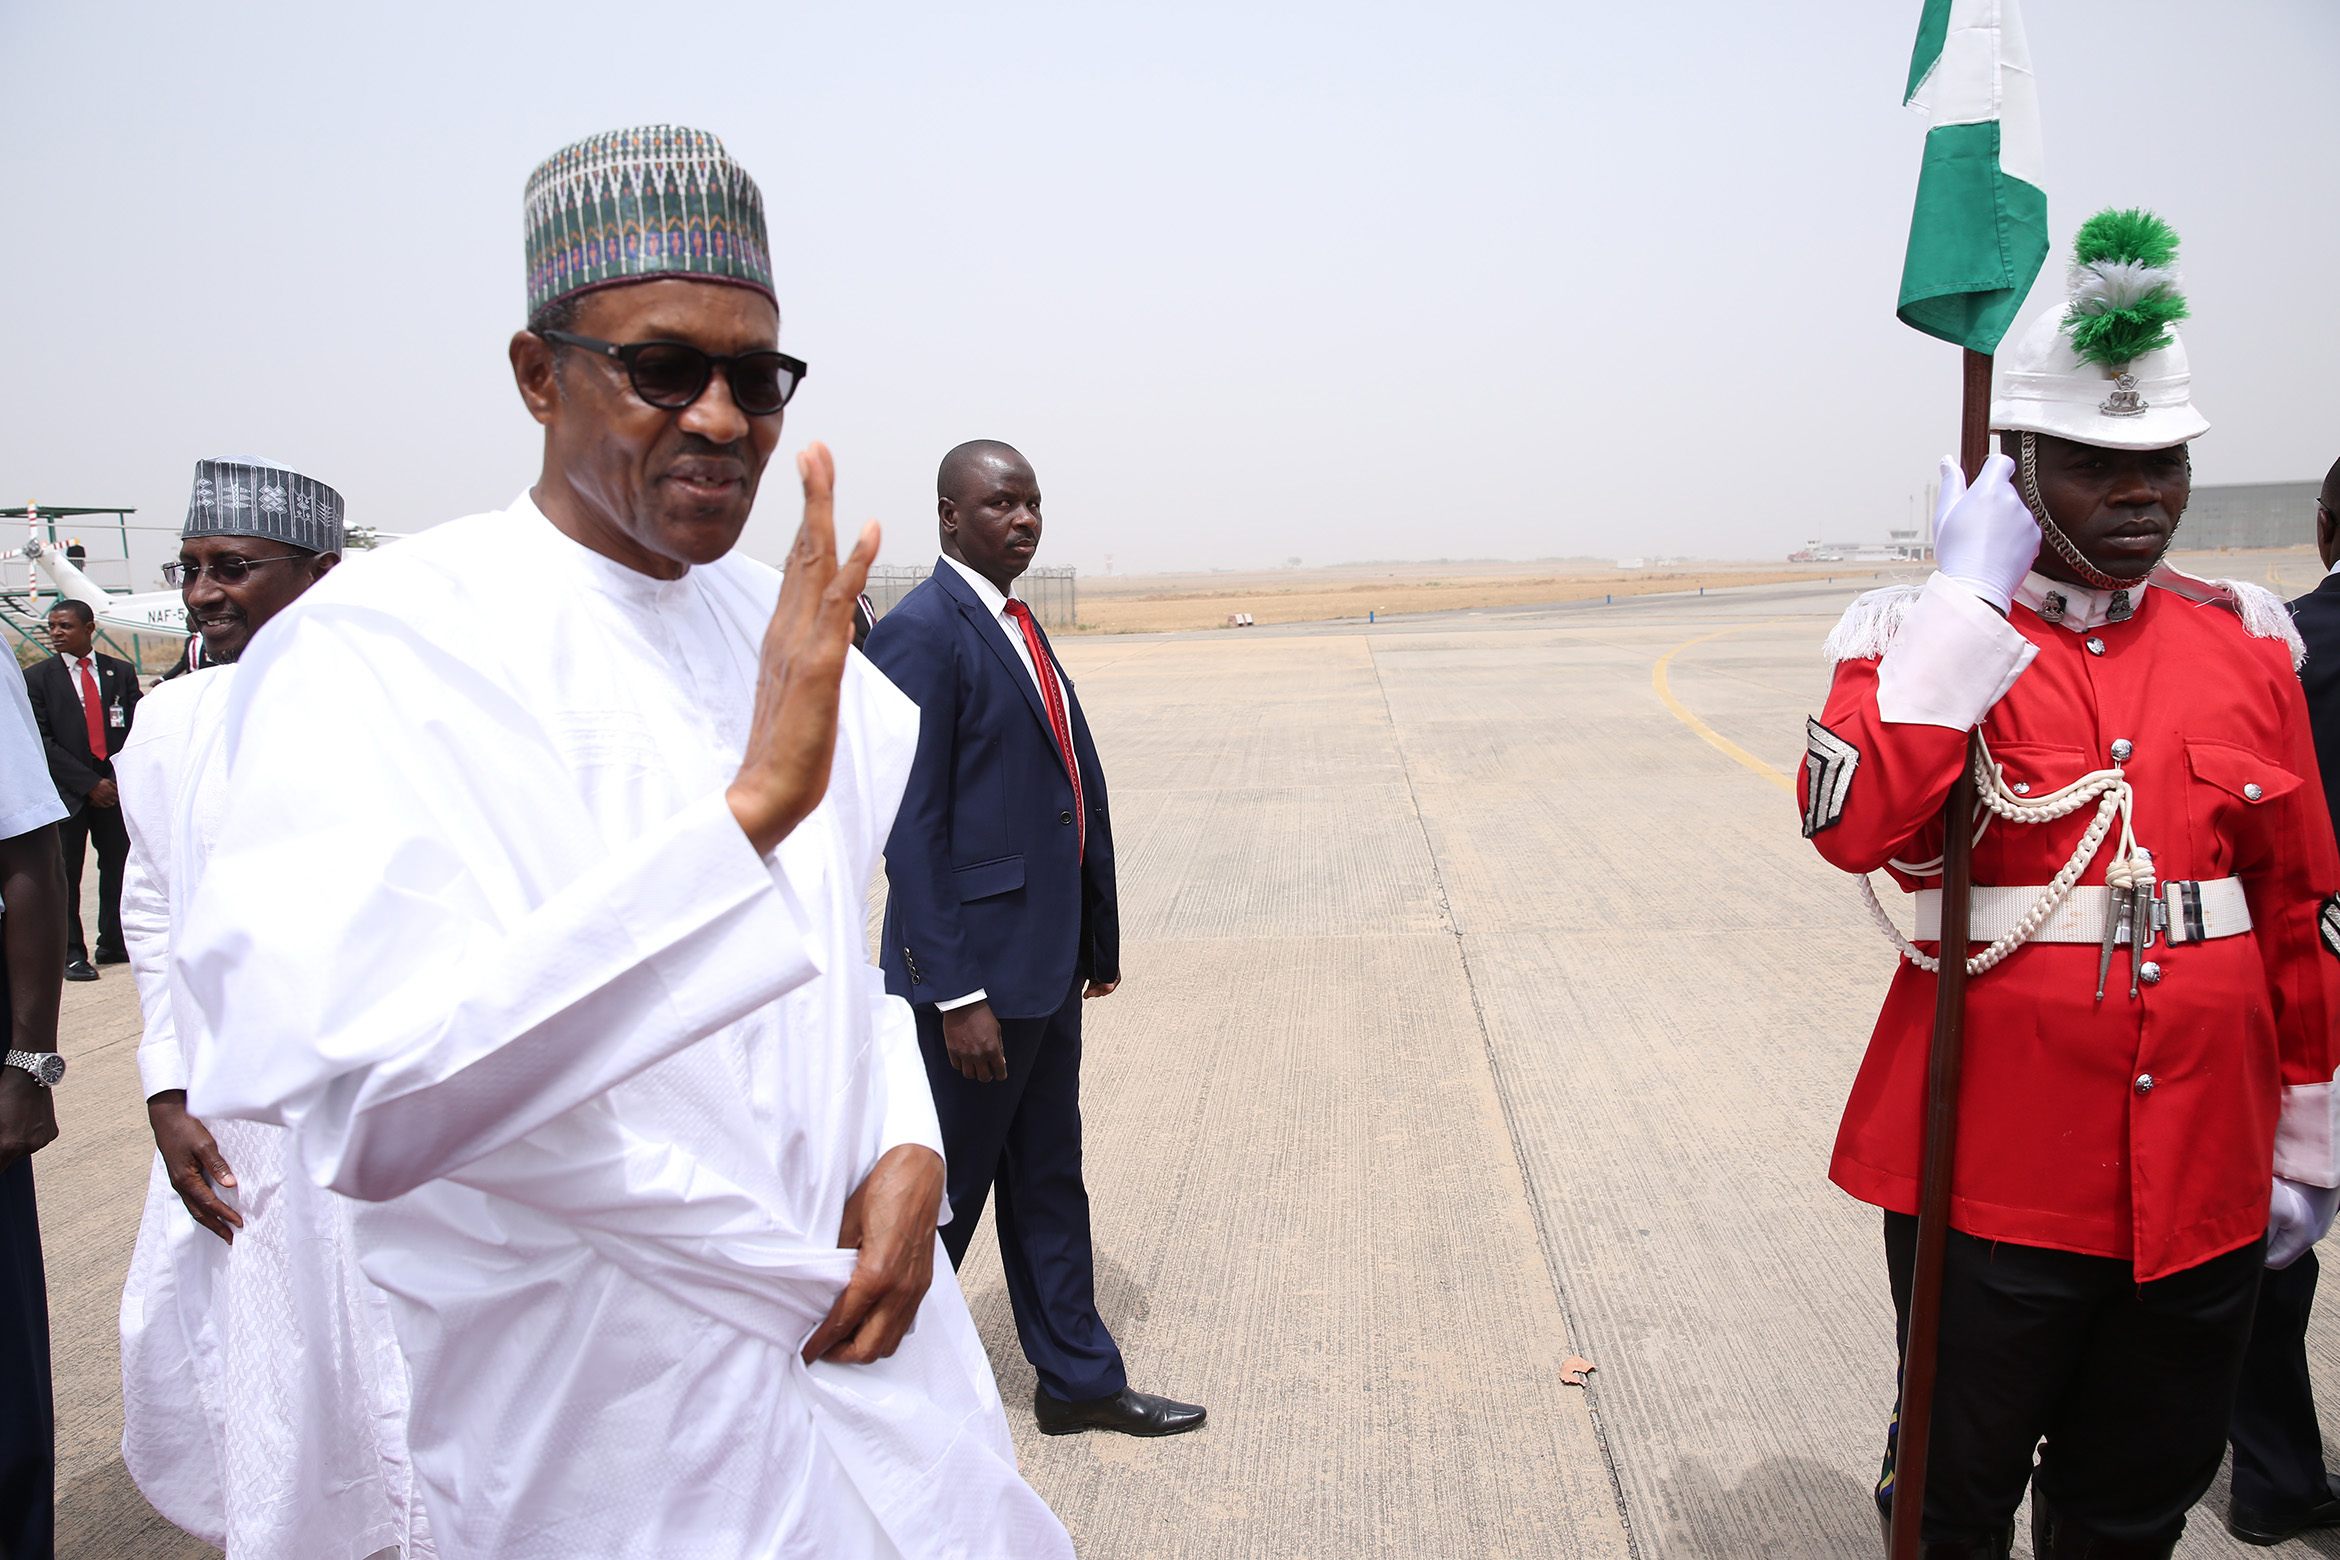 Buhari on the way to board the Presidential aircraft